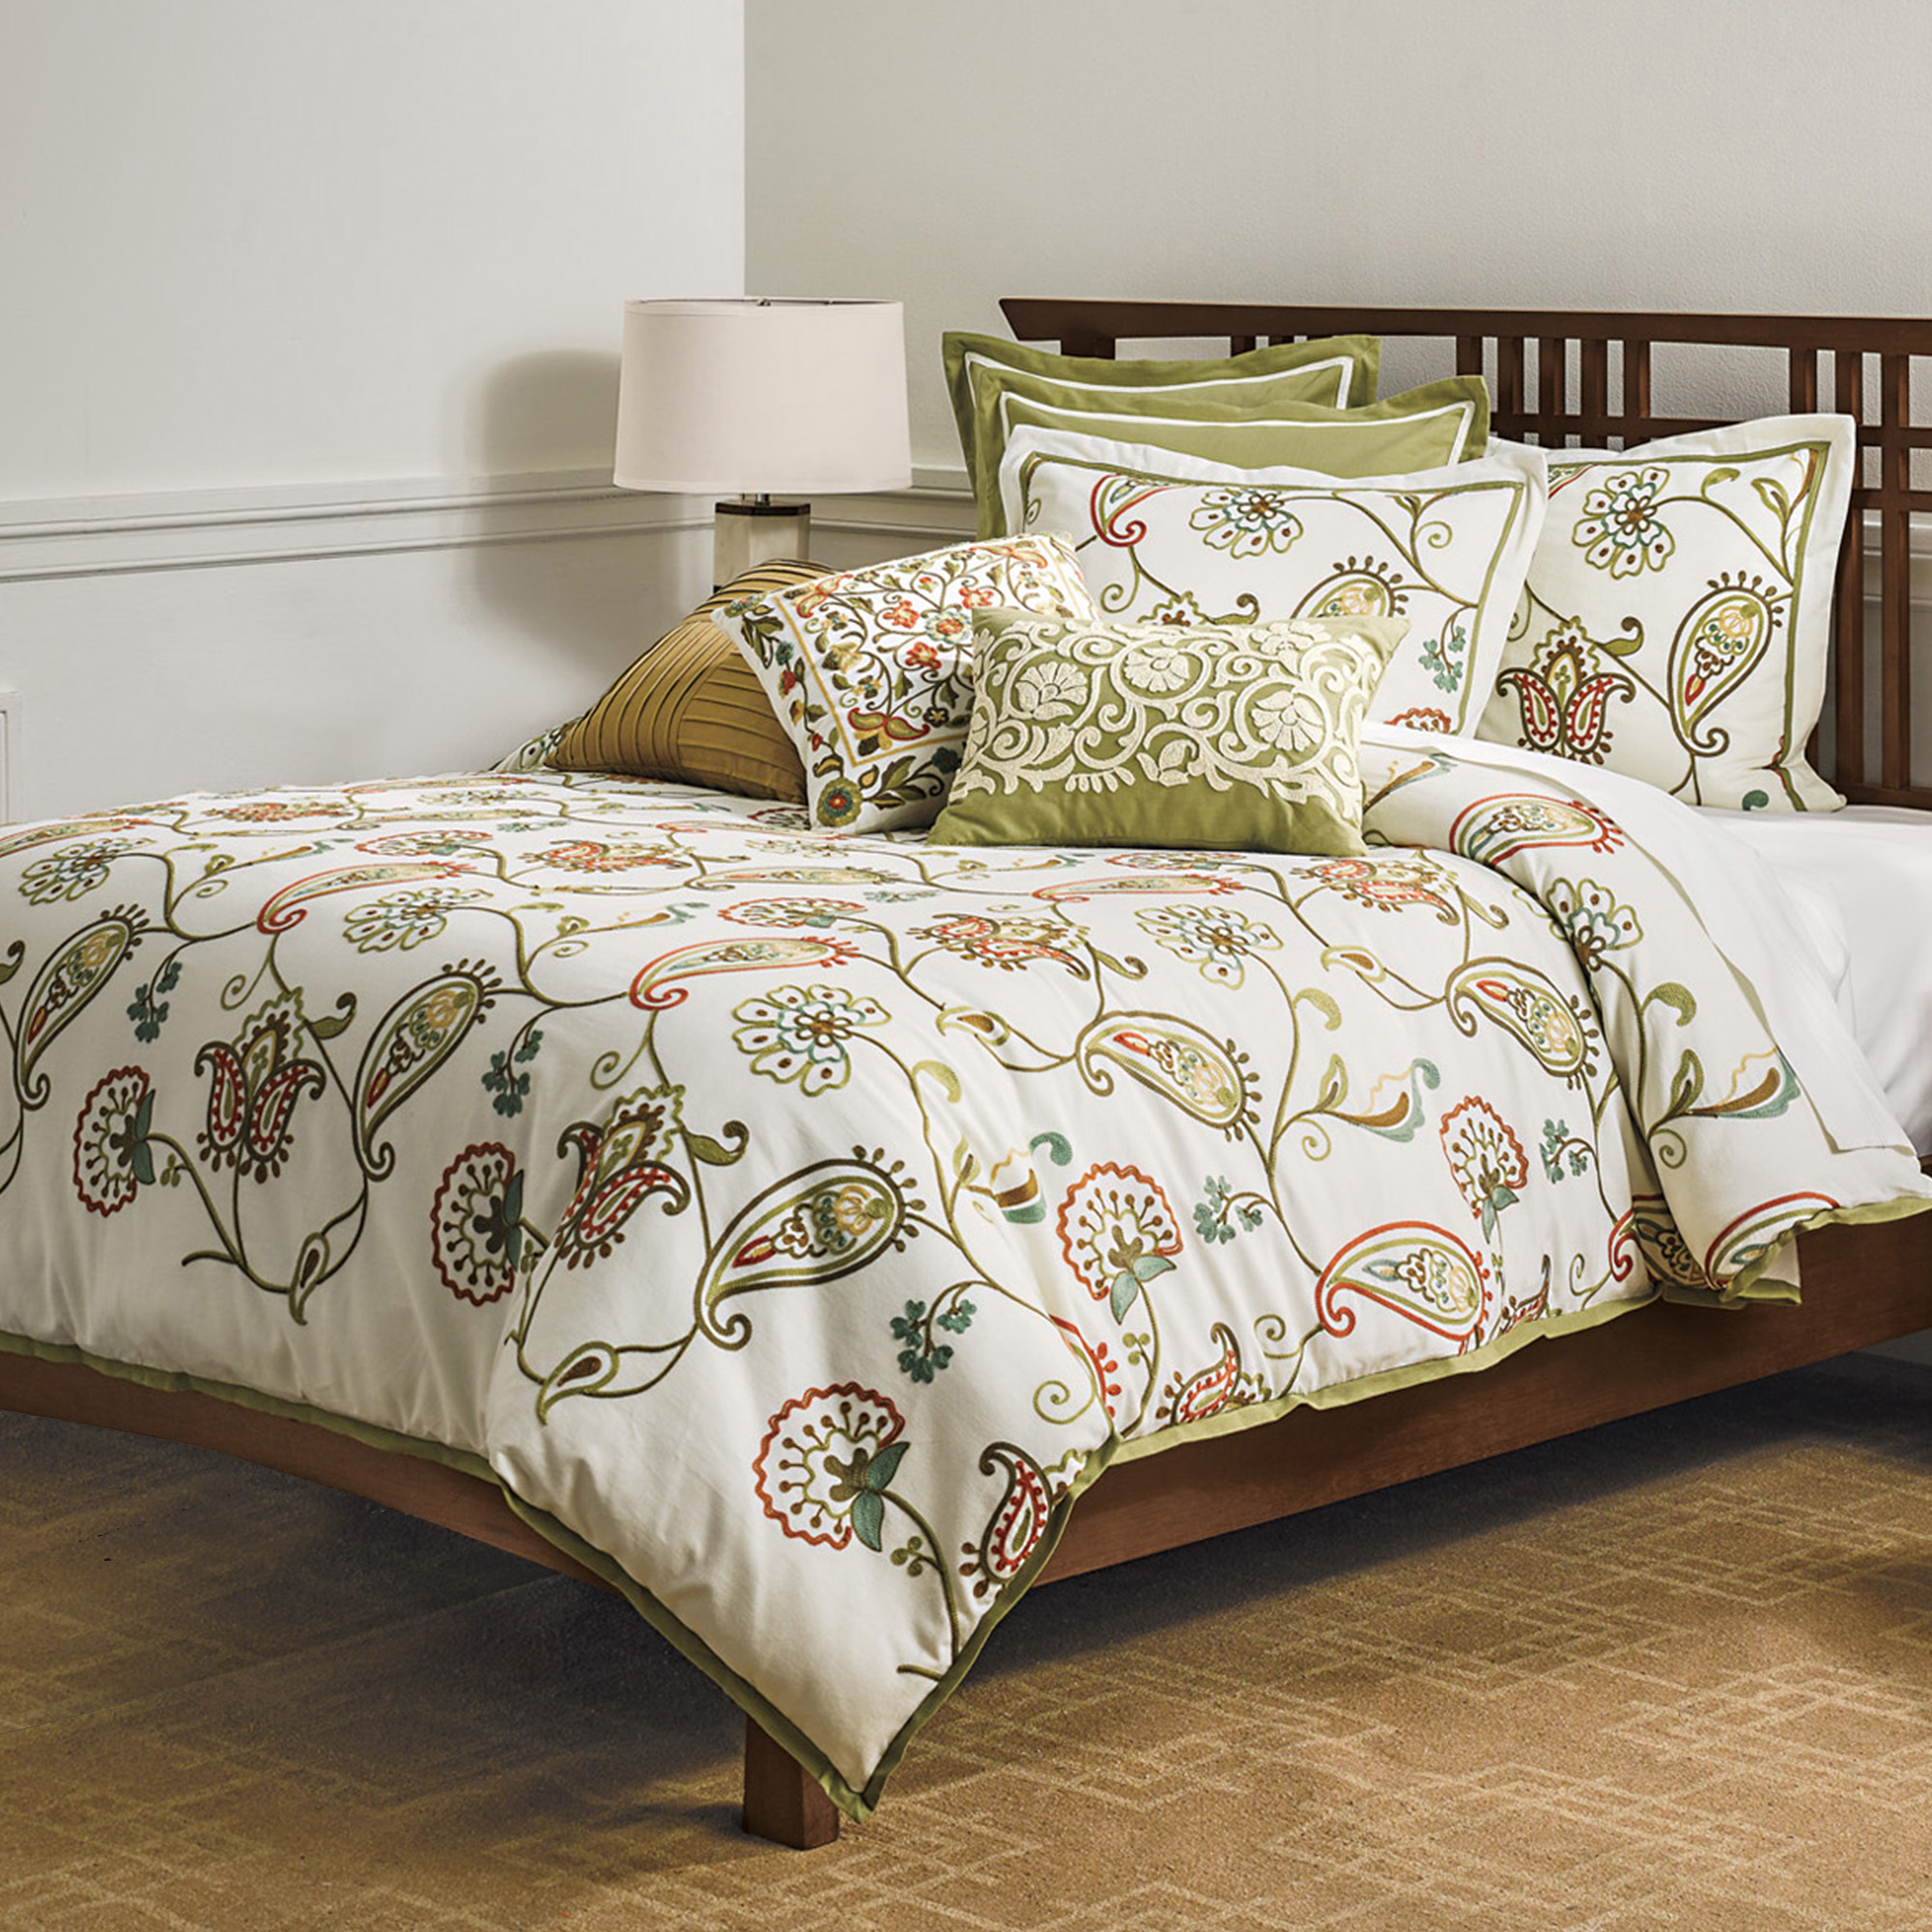 Inverness Crewel-Stitch Bedding Set